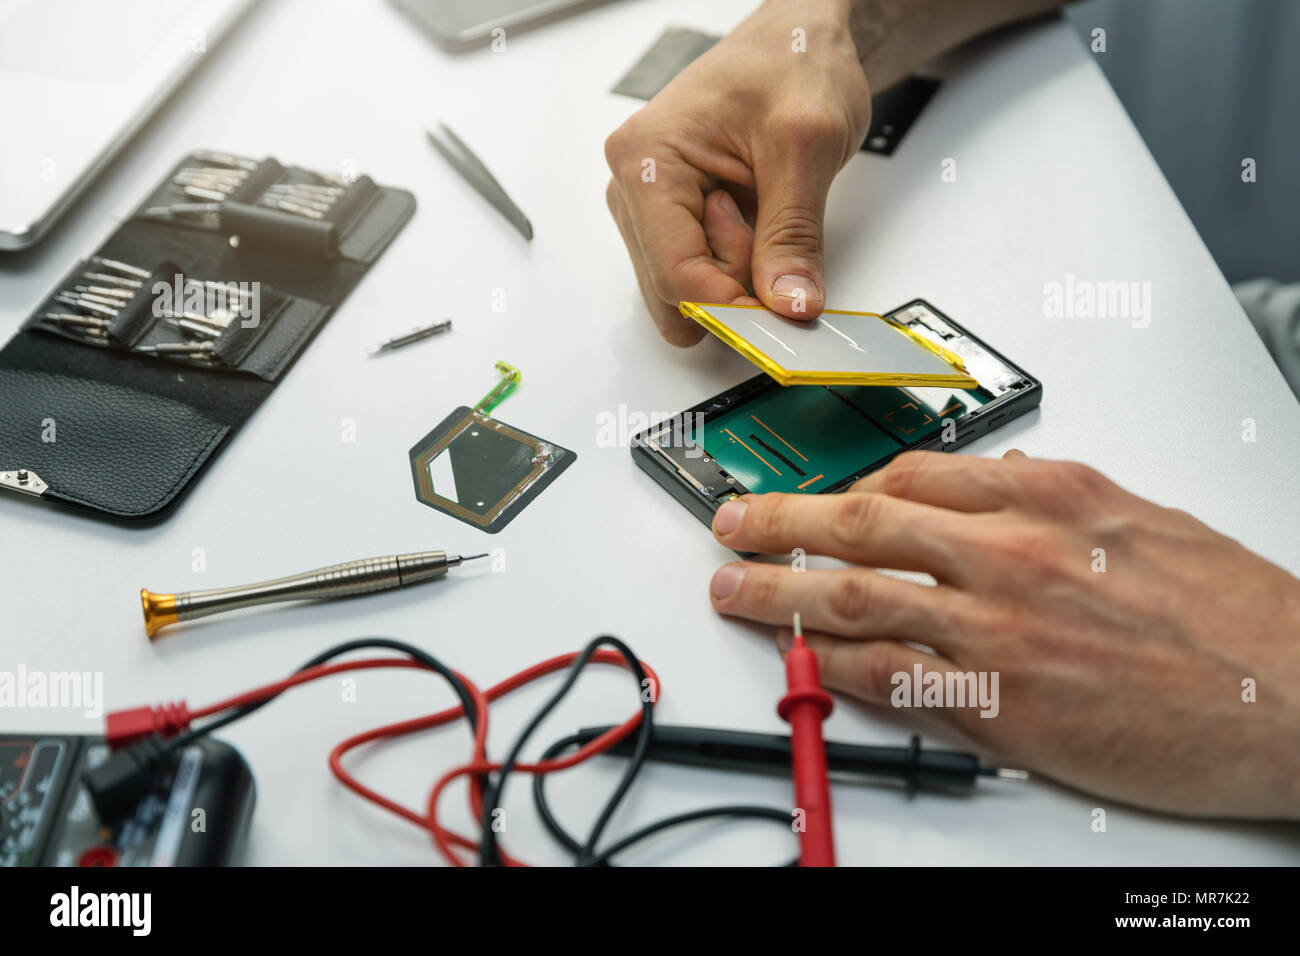 technician installing new battery in phone - Stock Image